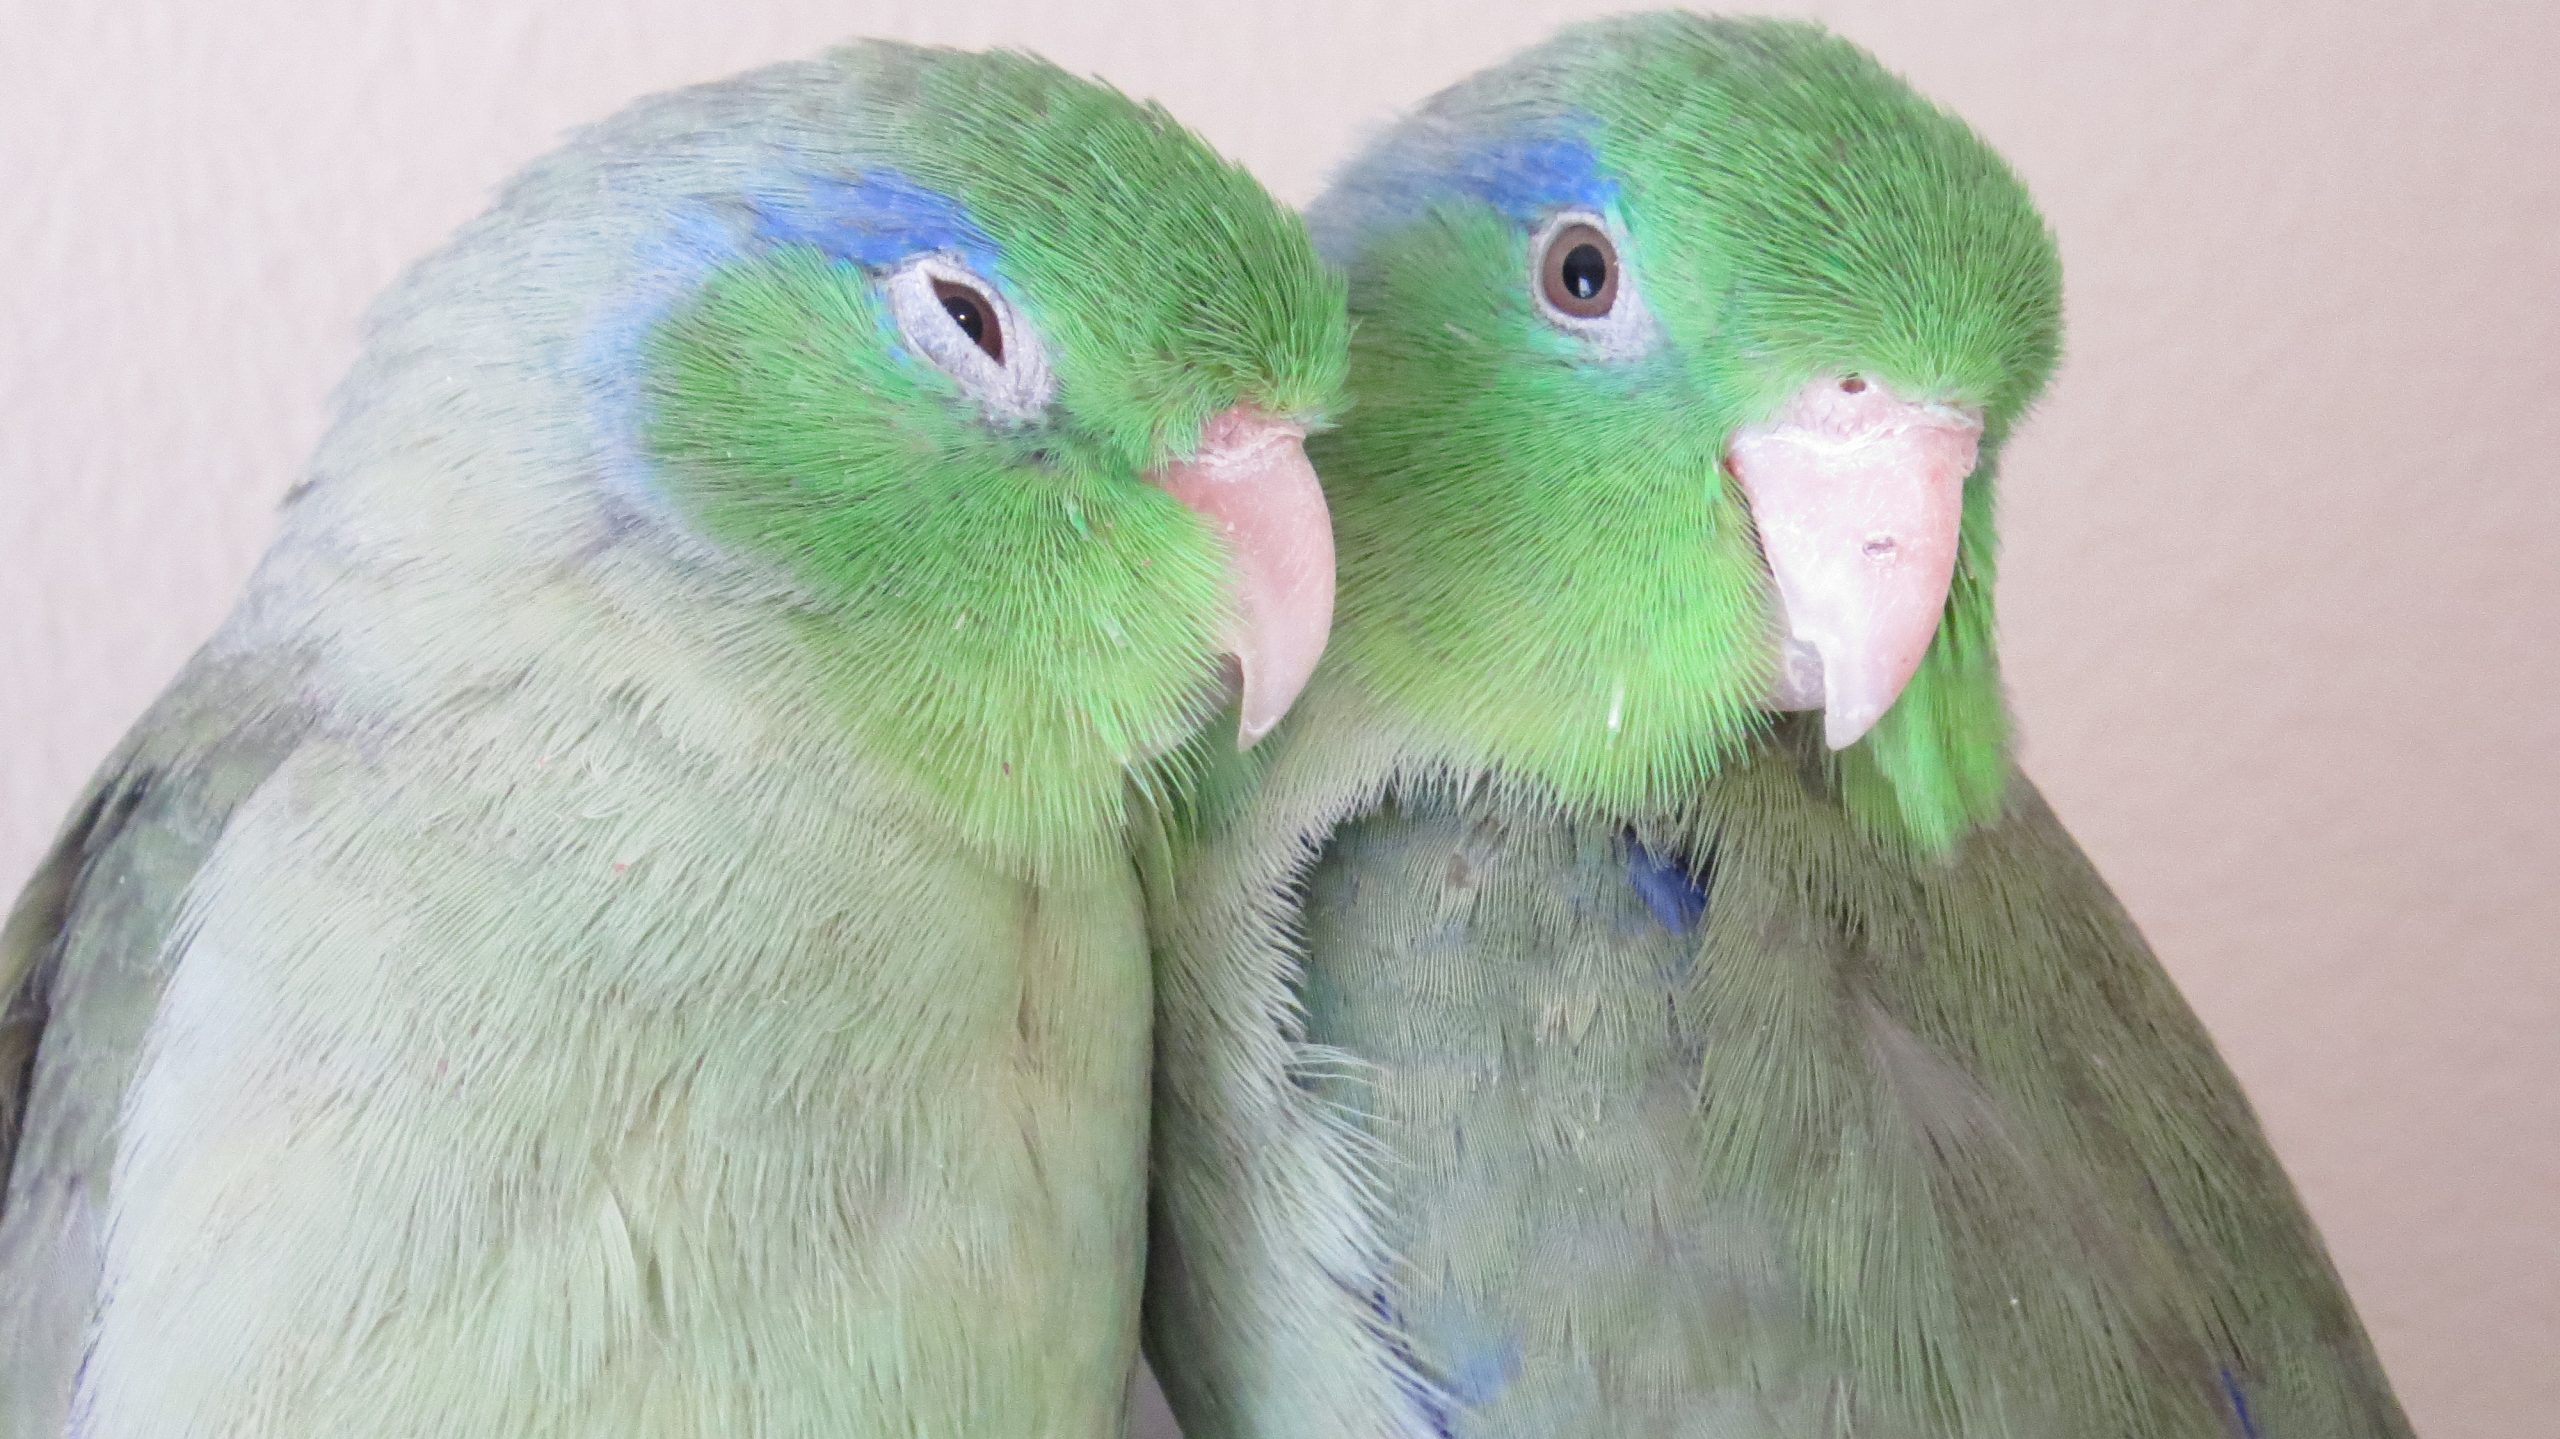 Tango and Echo (parrotlets)